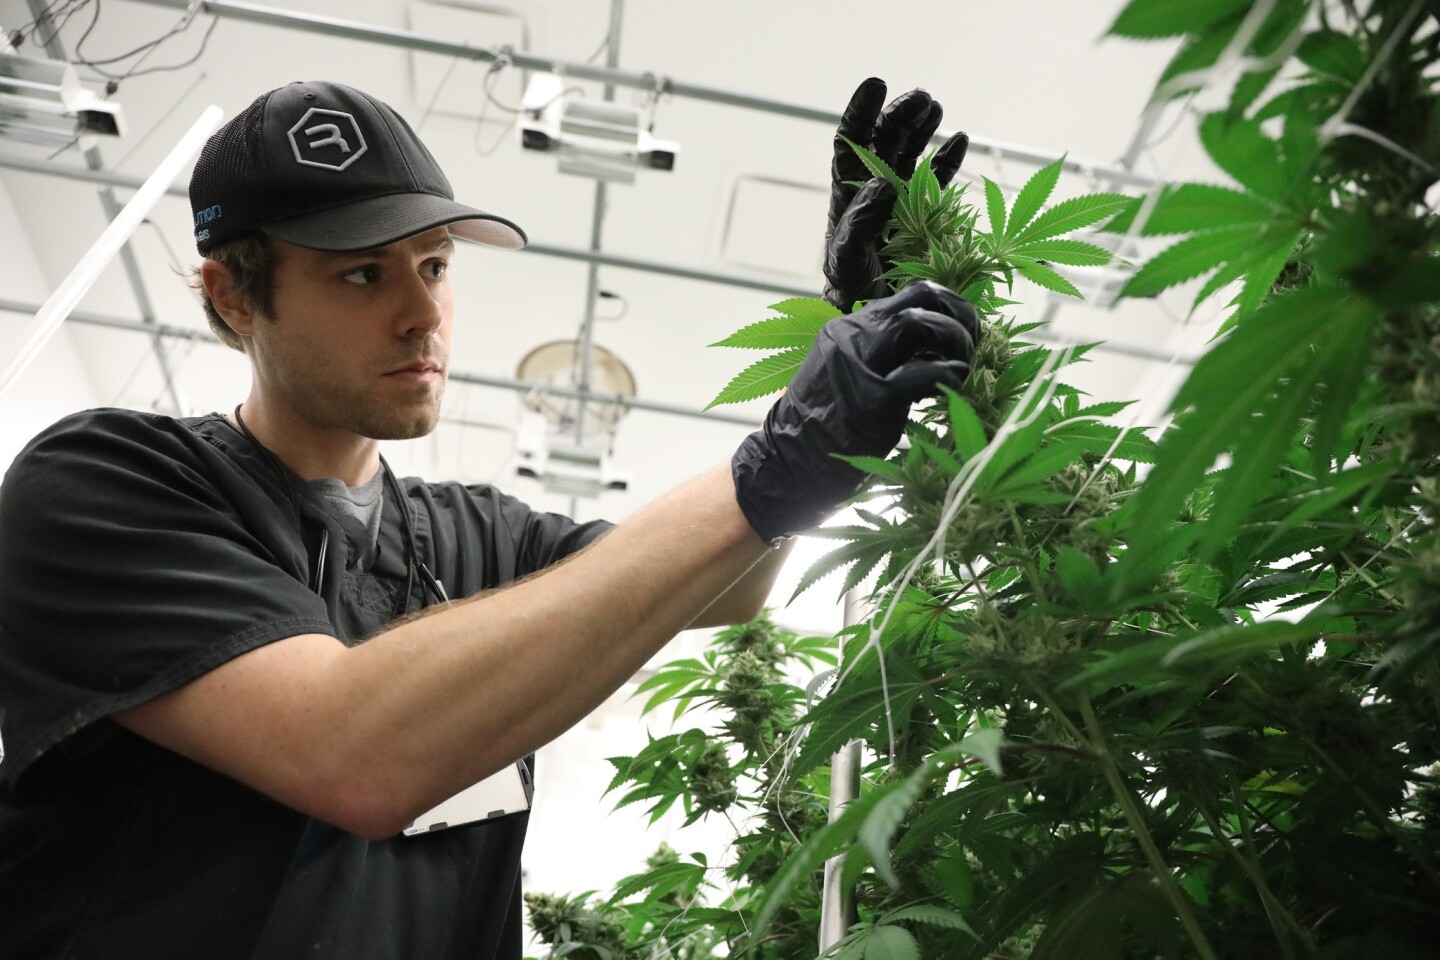 Roger Henrichs inspects the cannabis in the flowering room at Revolution Enterprise's medical cannabis cultivation facility in Delavan, Ill., on Dec. 12, 2017.